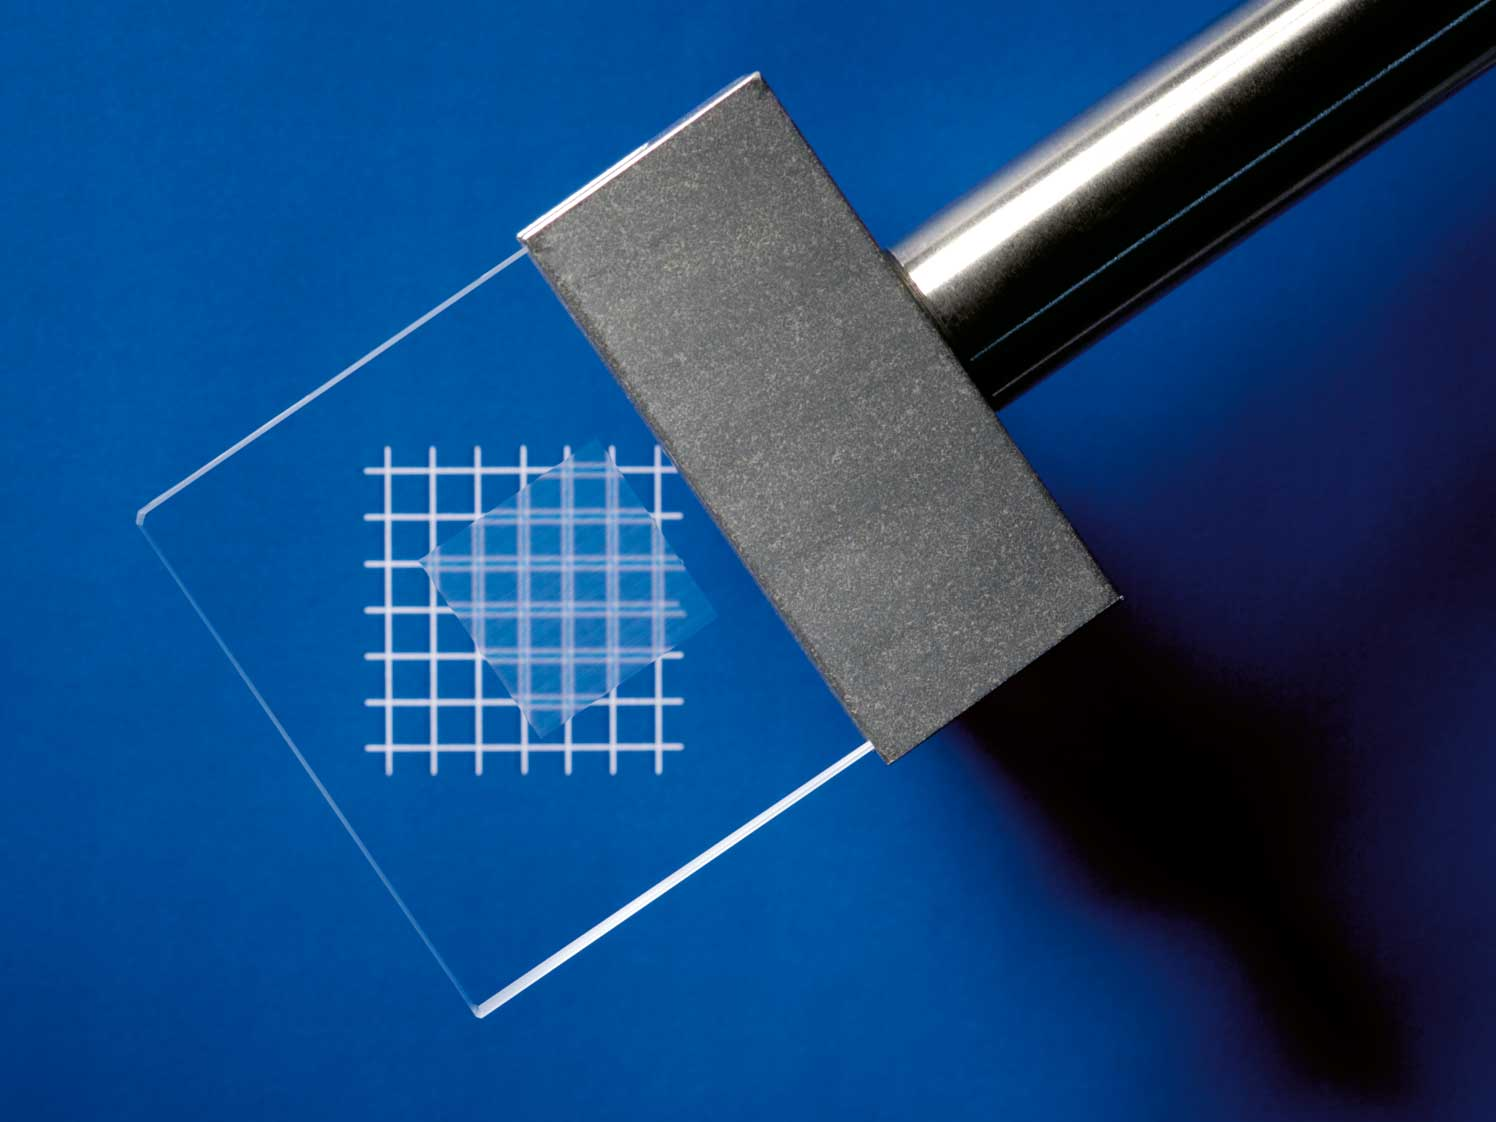 Diffractive beam splitters - separate a single incident laser beam into multiple non-overlapping beams